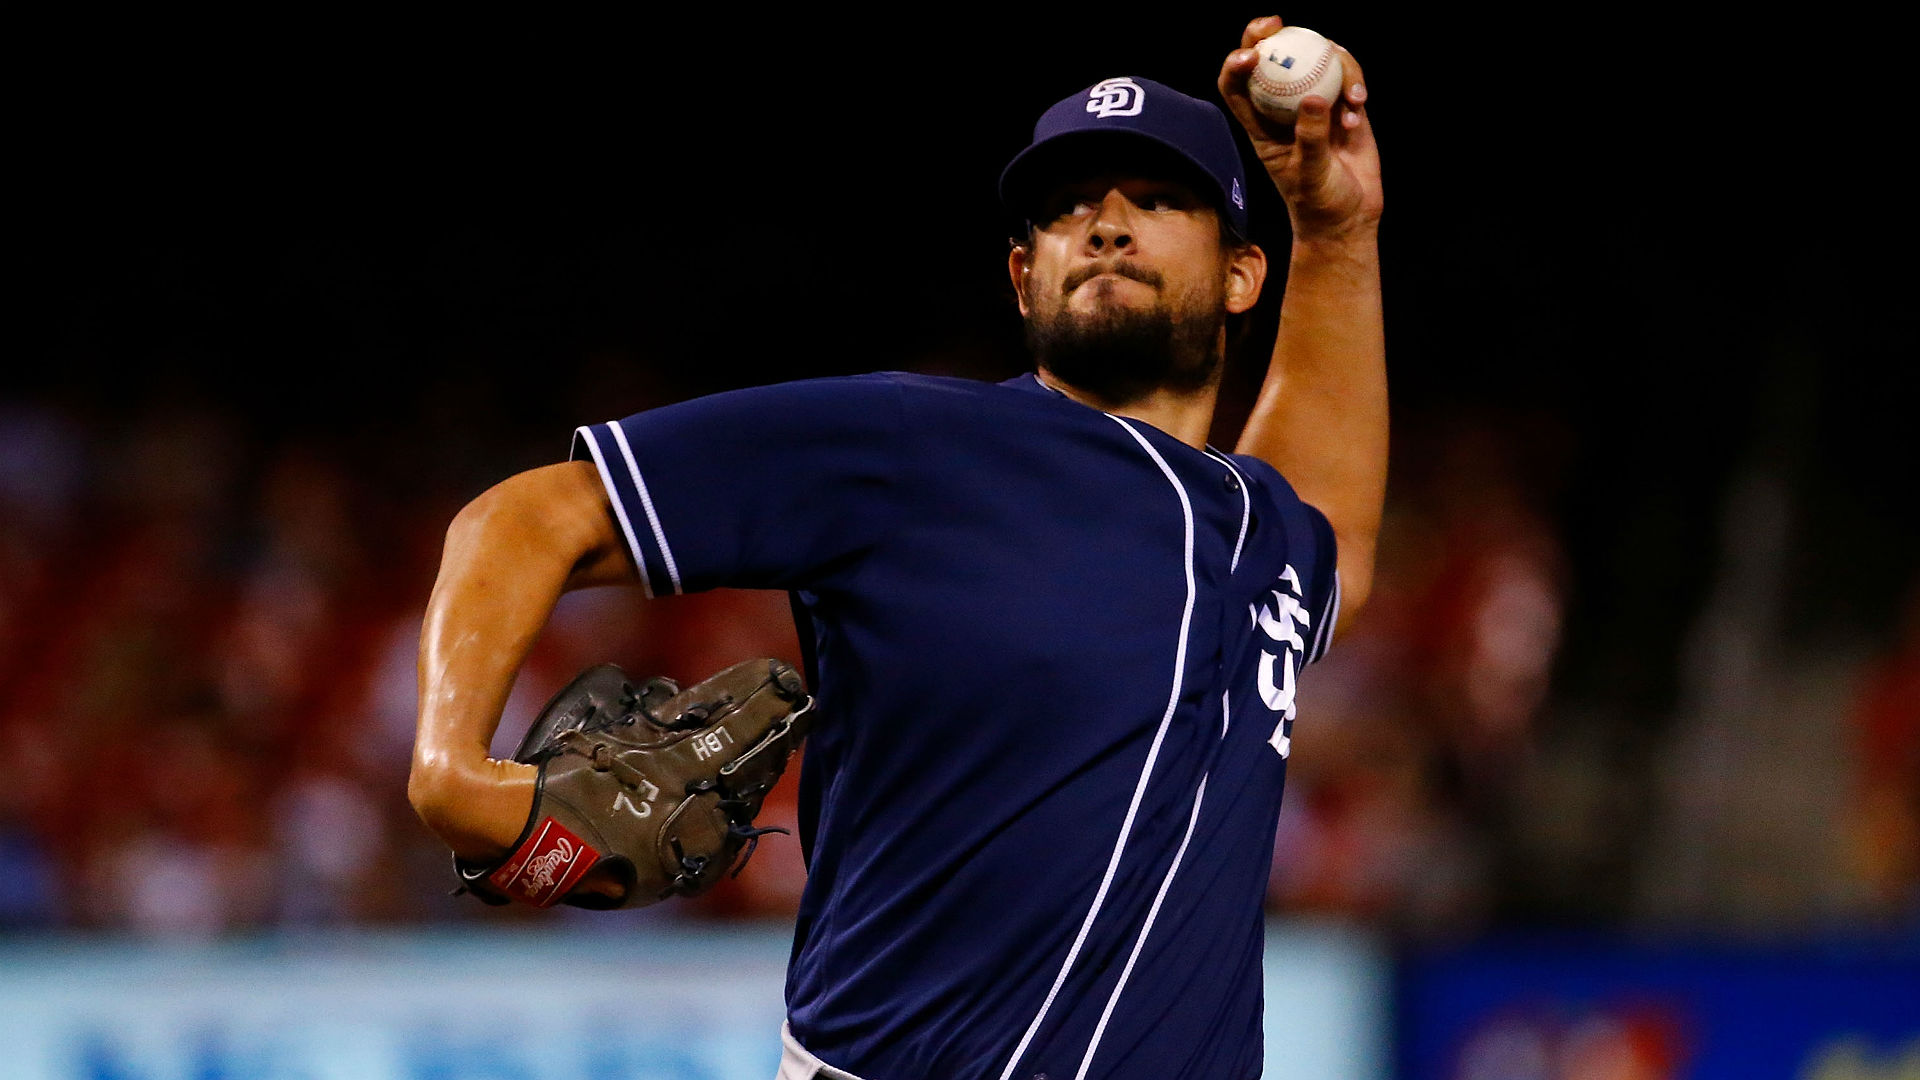 MLB trade rumors: Indians interested in Padres reliever Brad Hand